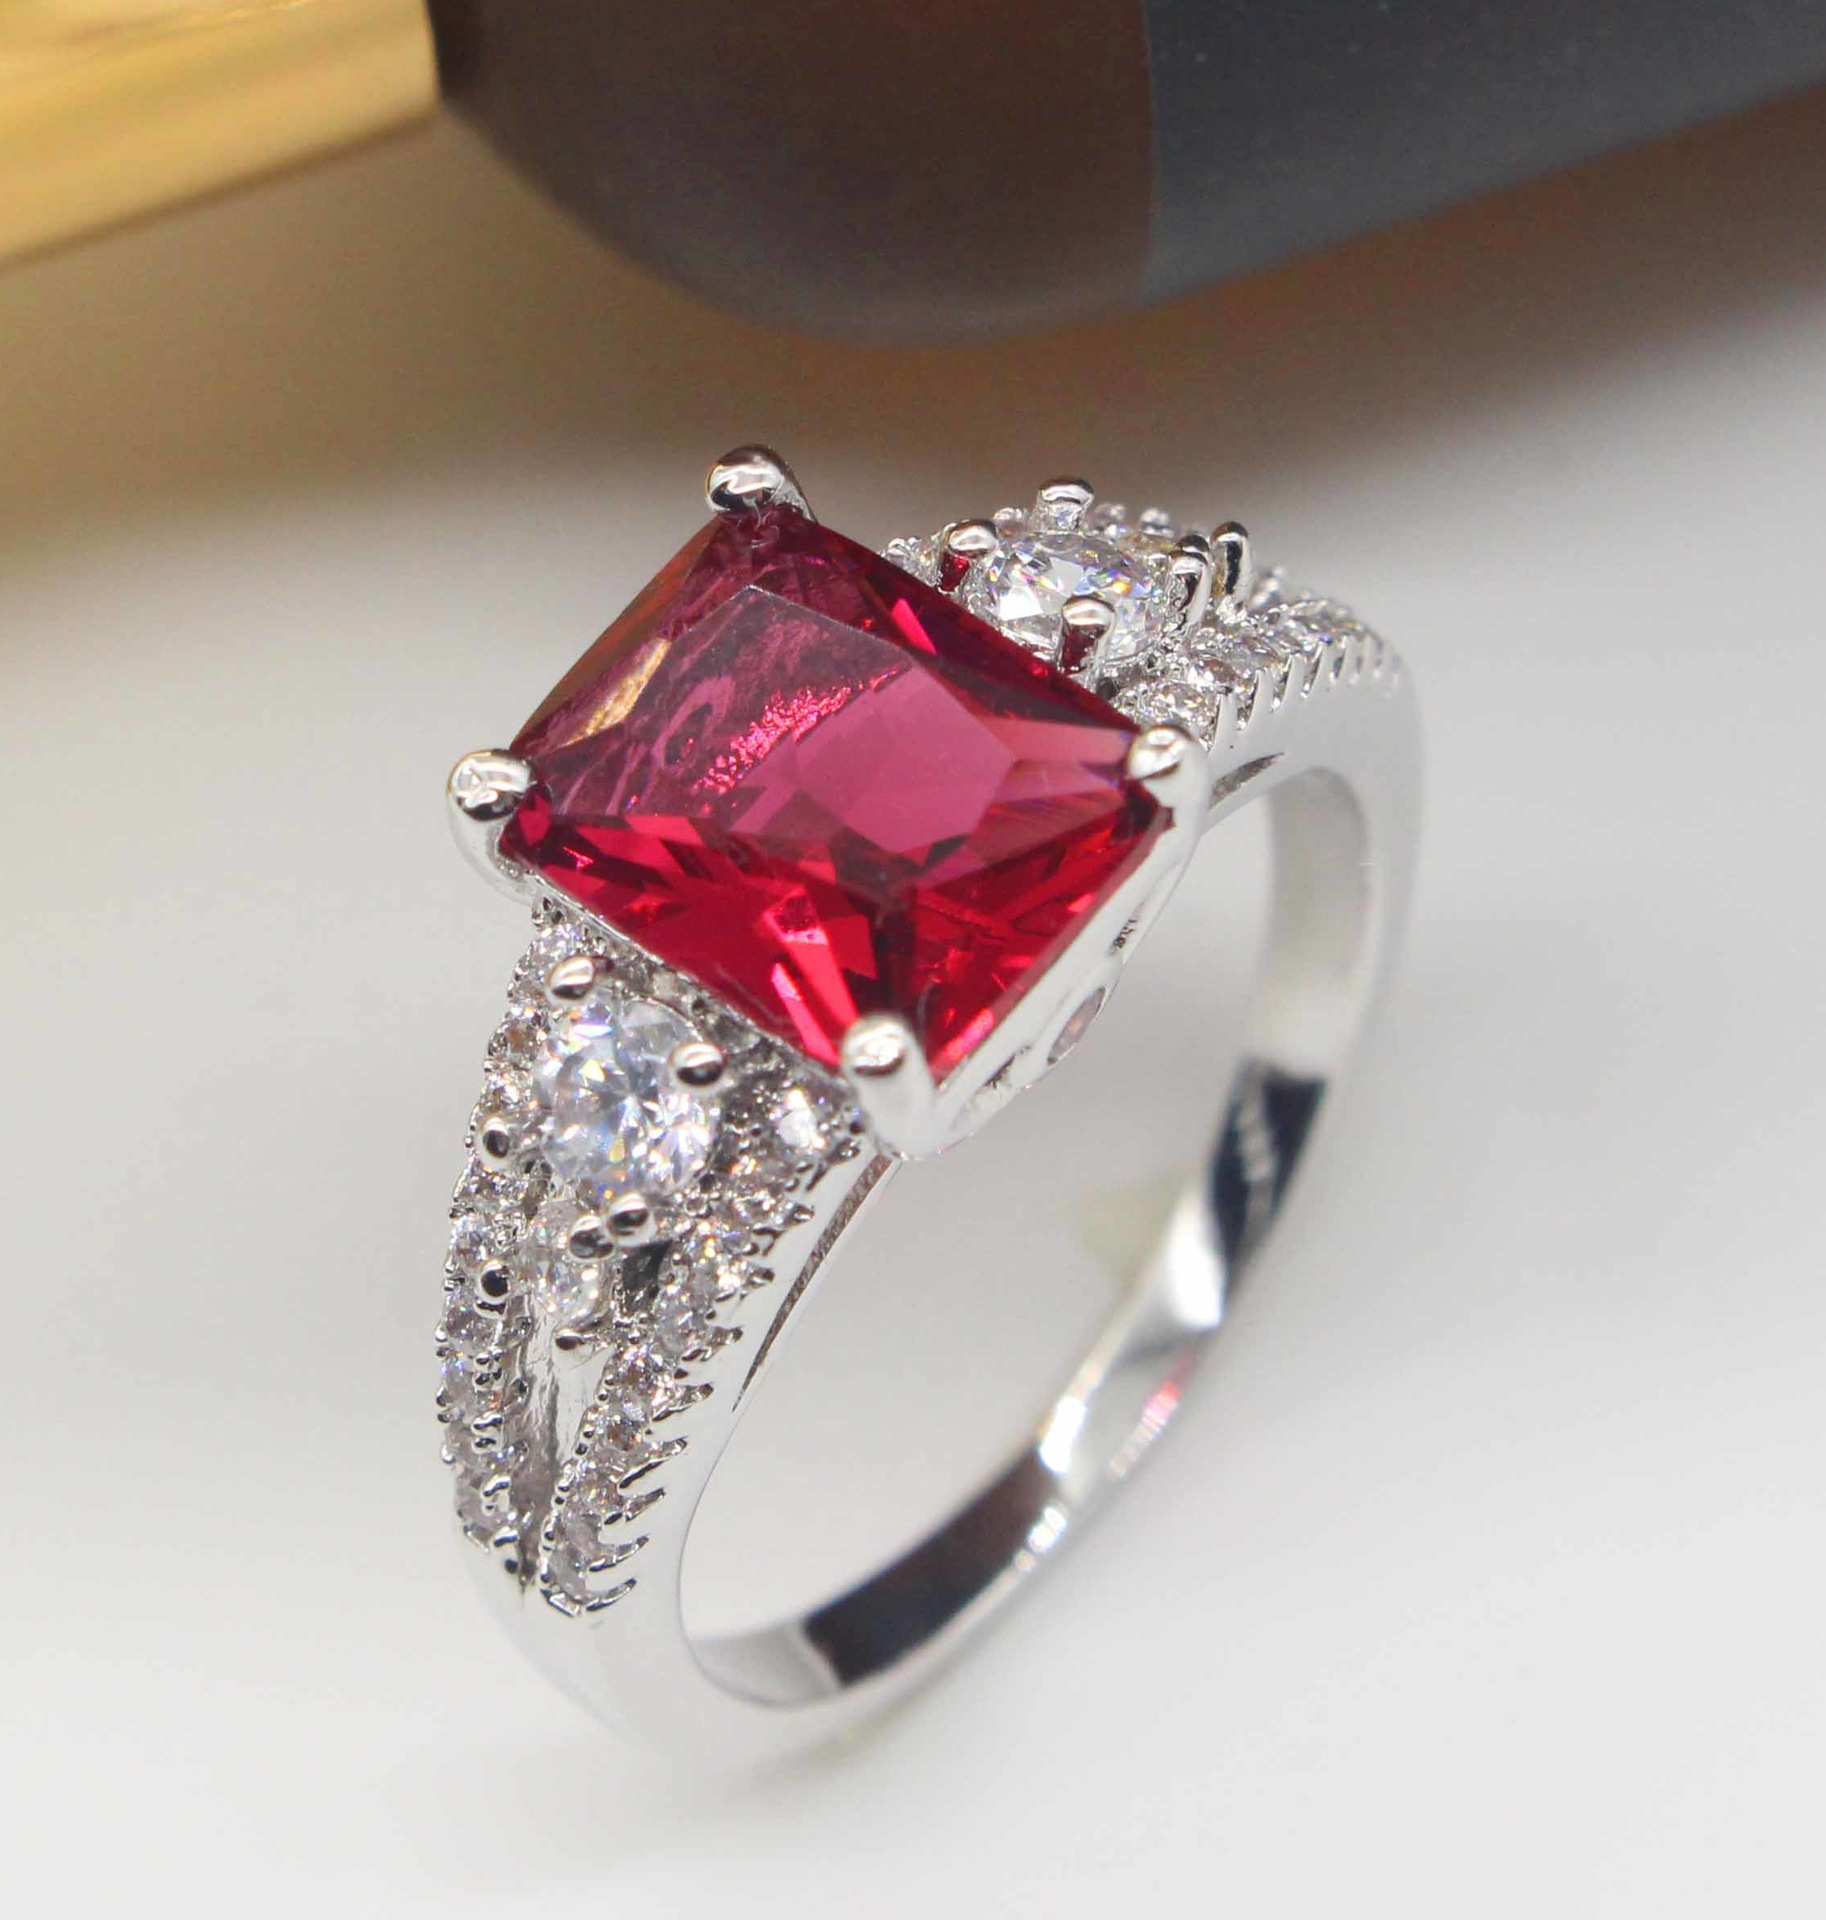 fashion italian 925 sterling silver wedding rings for women cz jewelry engagement red crystal ring gift